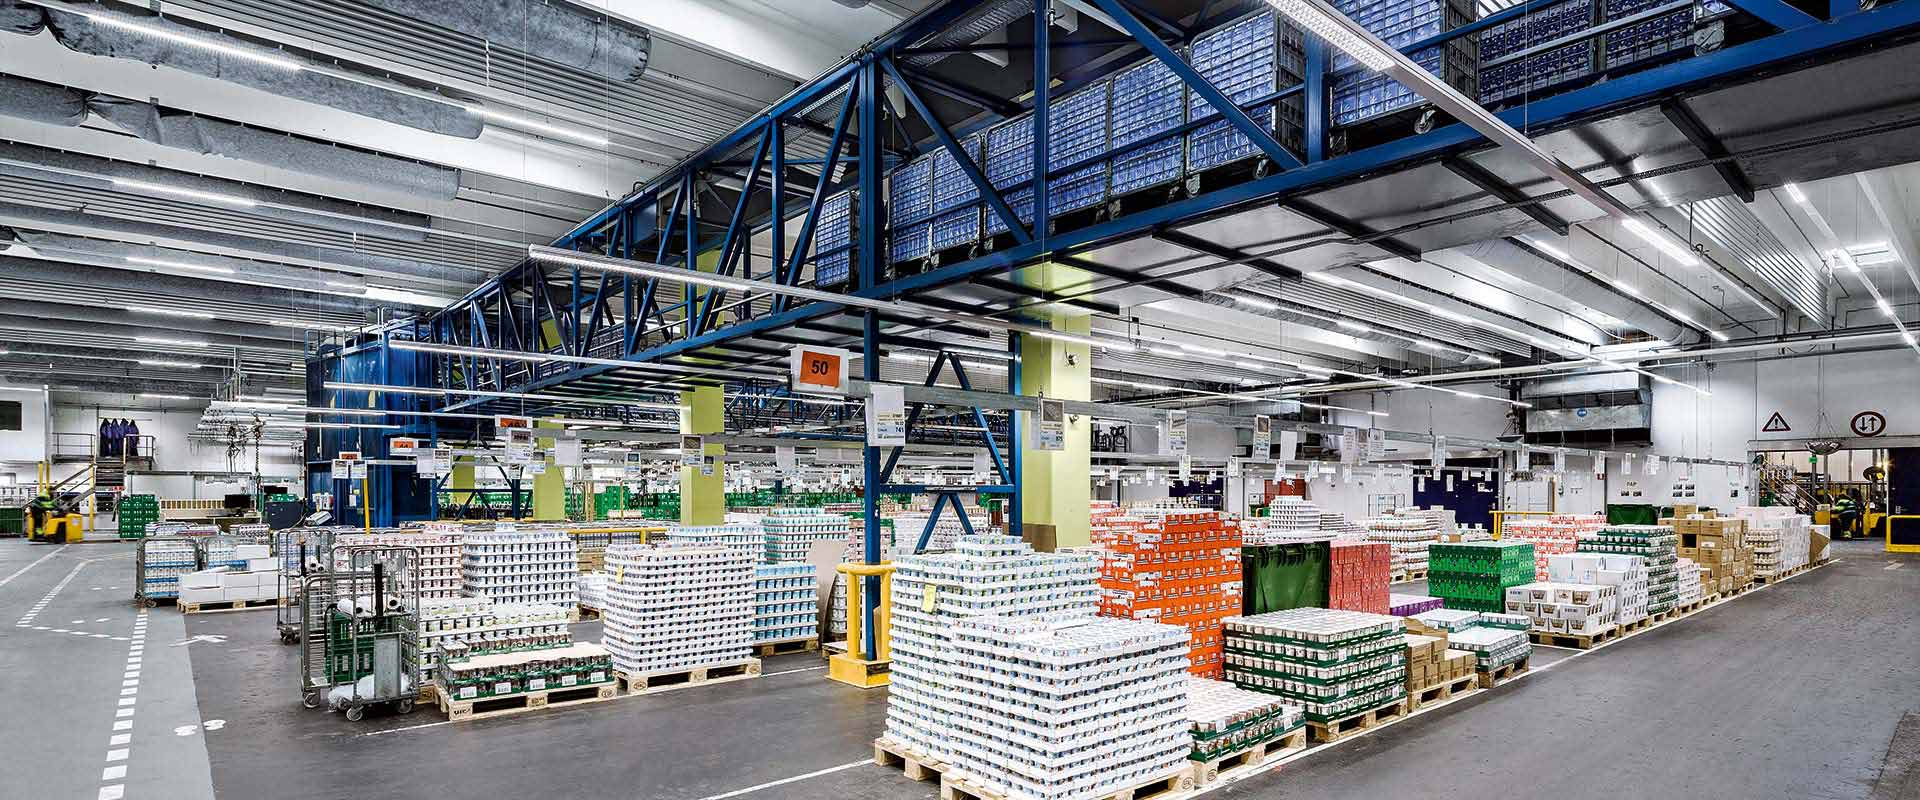 Lighting Systems For The Food Industry